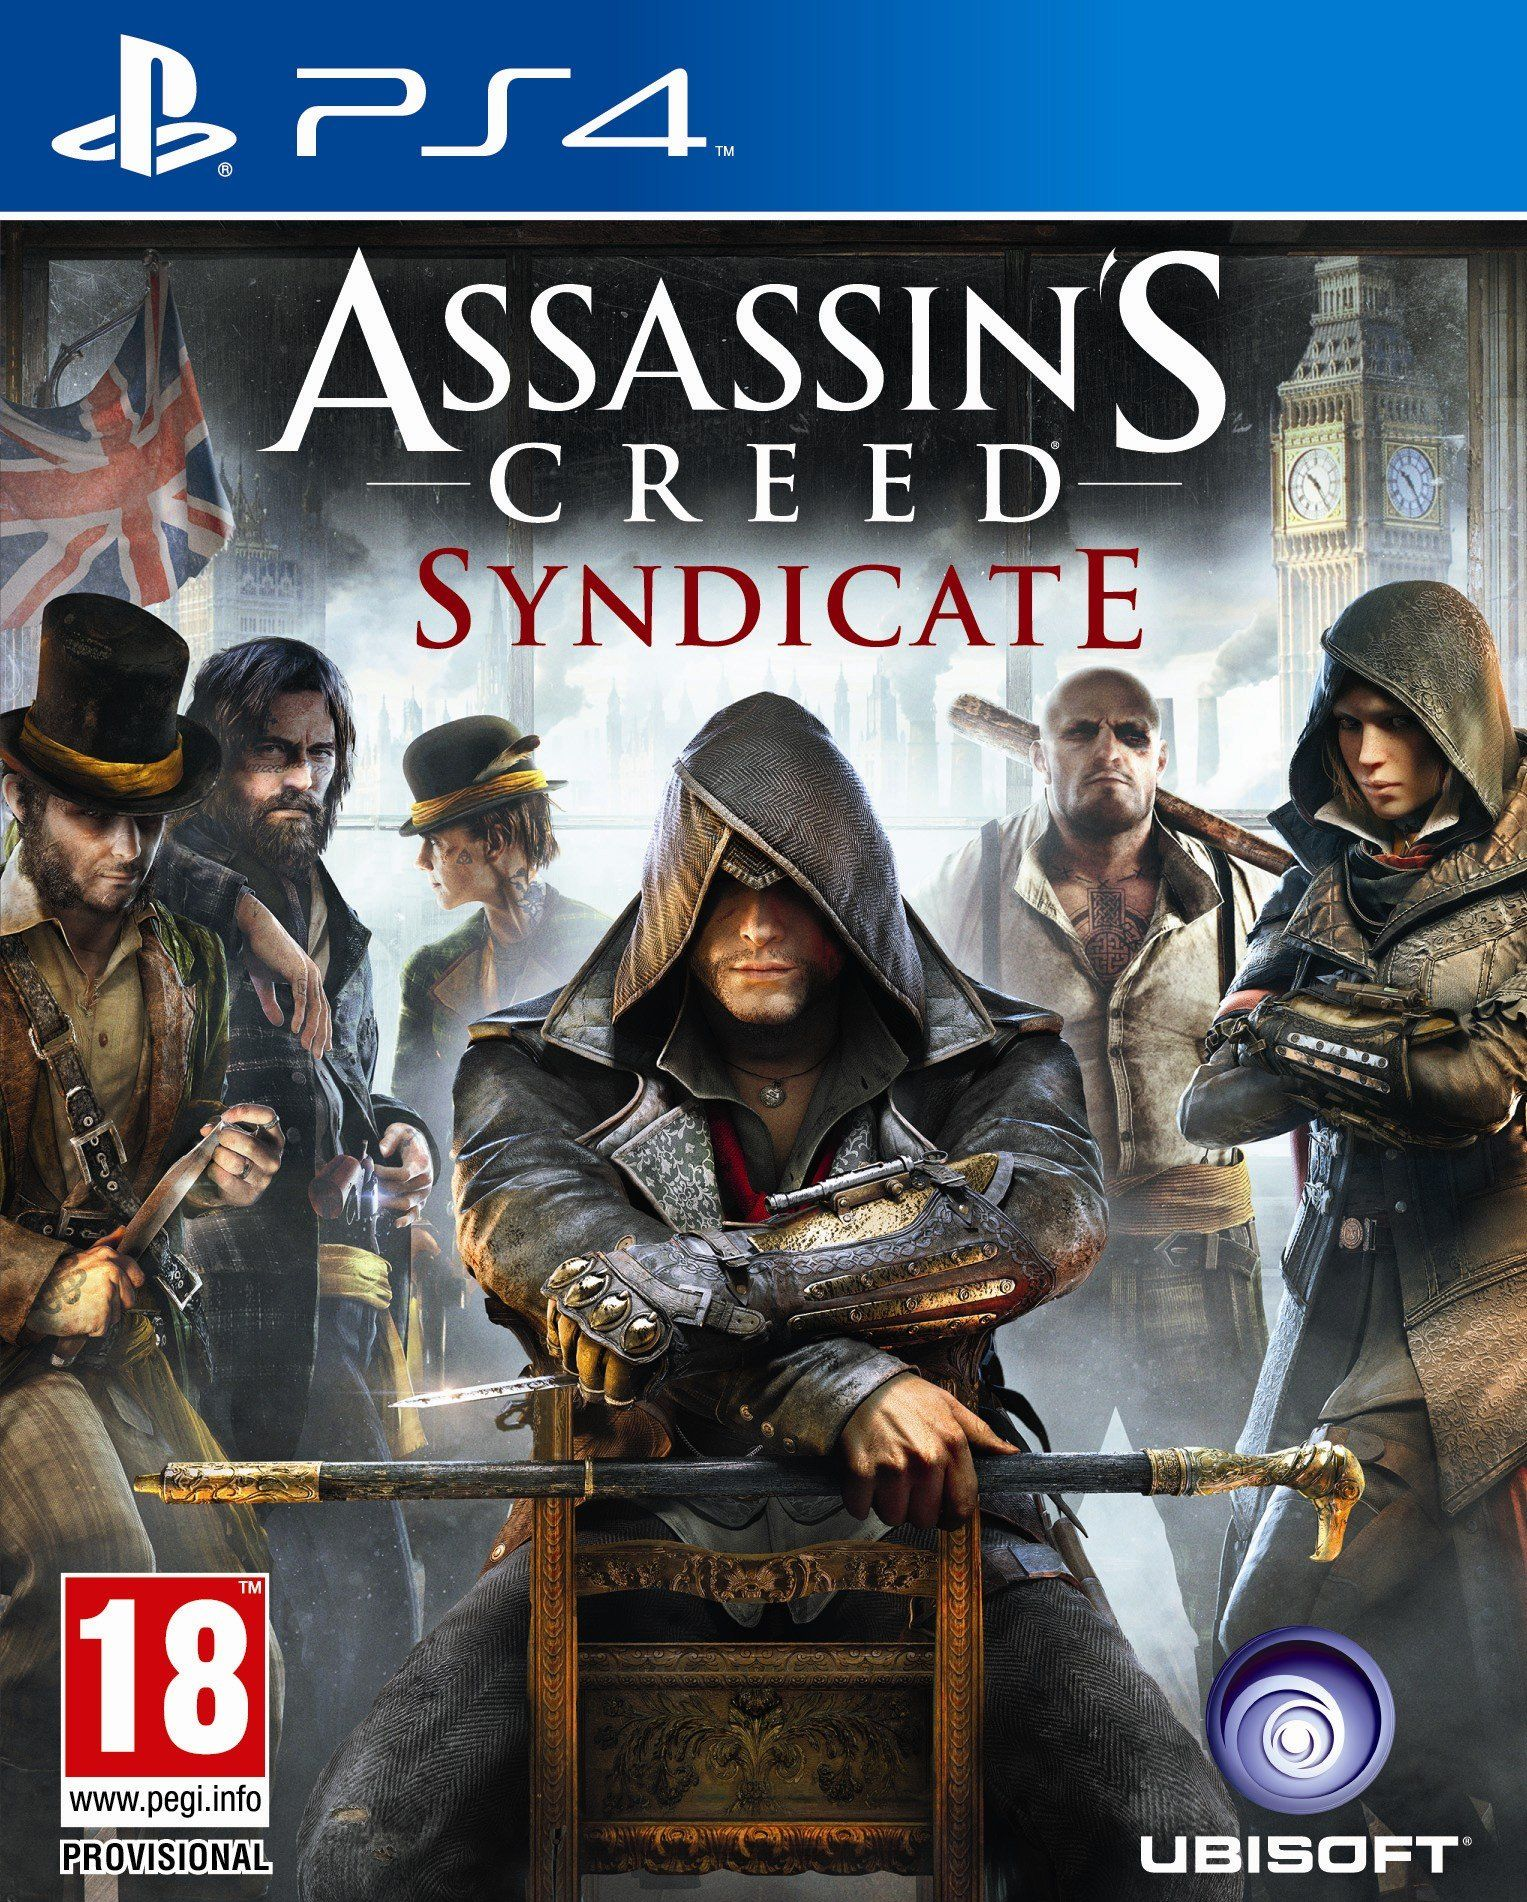 Assassin S Creed Syndicate Ps4 Amazon Co Uk Pc Video Games Assassins Creed Syndicate Assassins Creed Syndicate